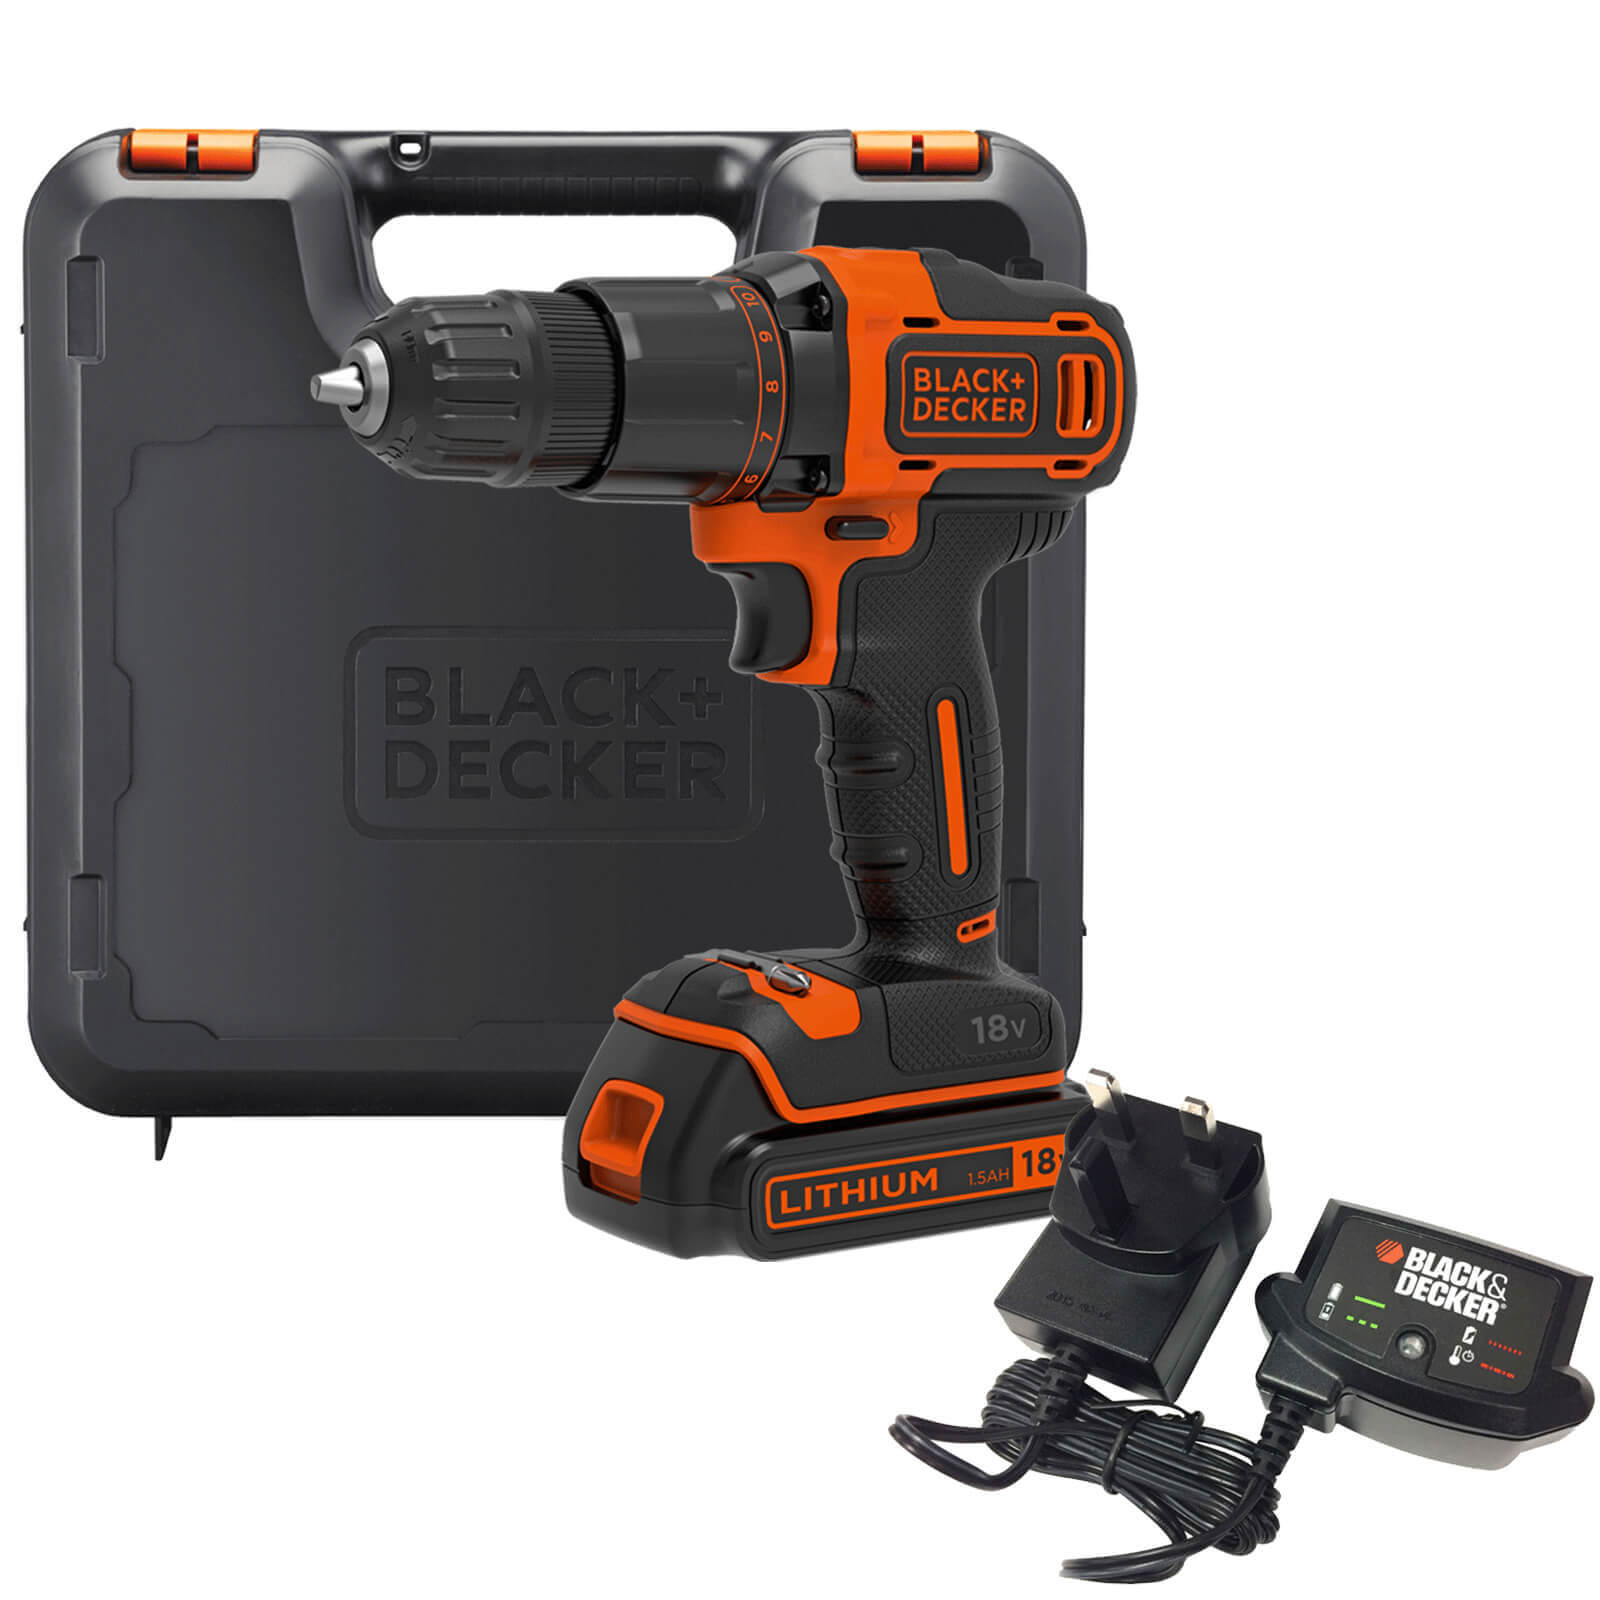 Image of Black & Decker BCD700S 18v Cordless Combi Drill 1 x 1.5ah Li-ion Charger Case